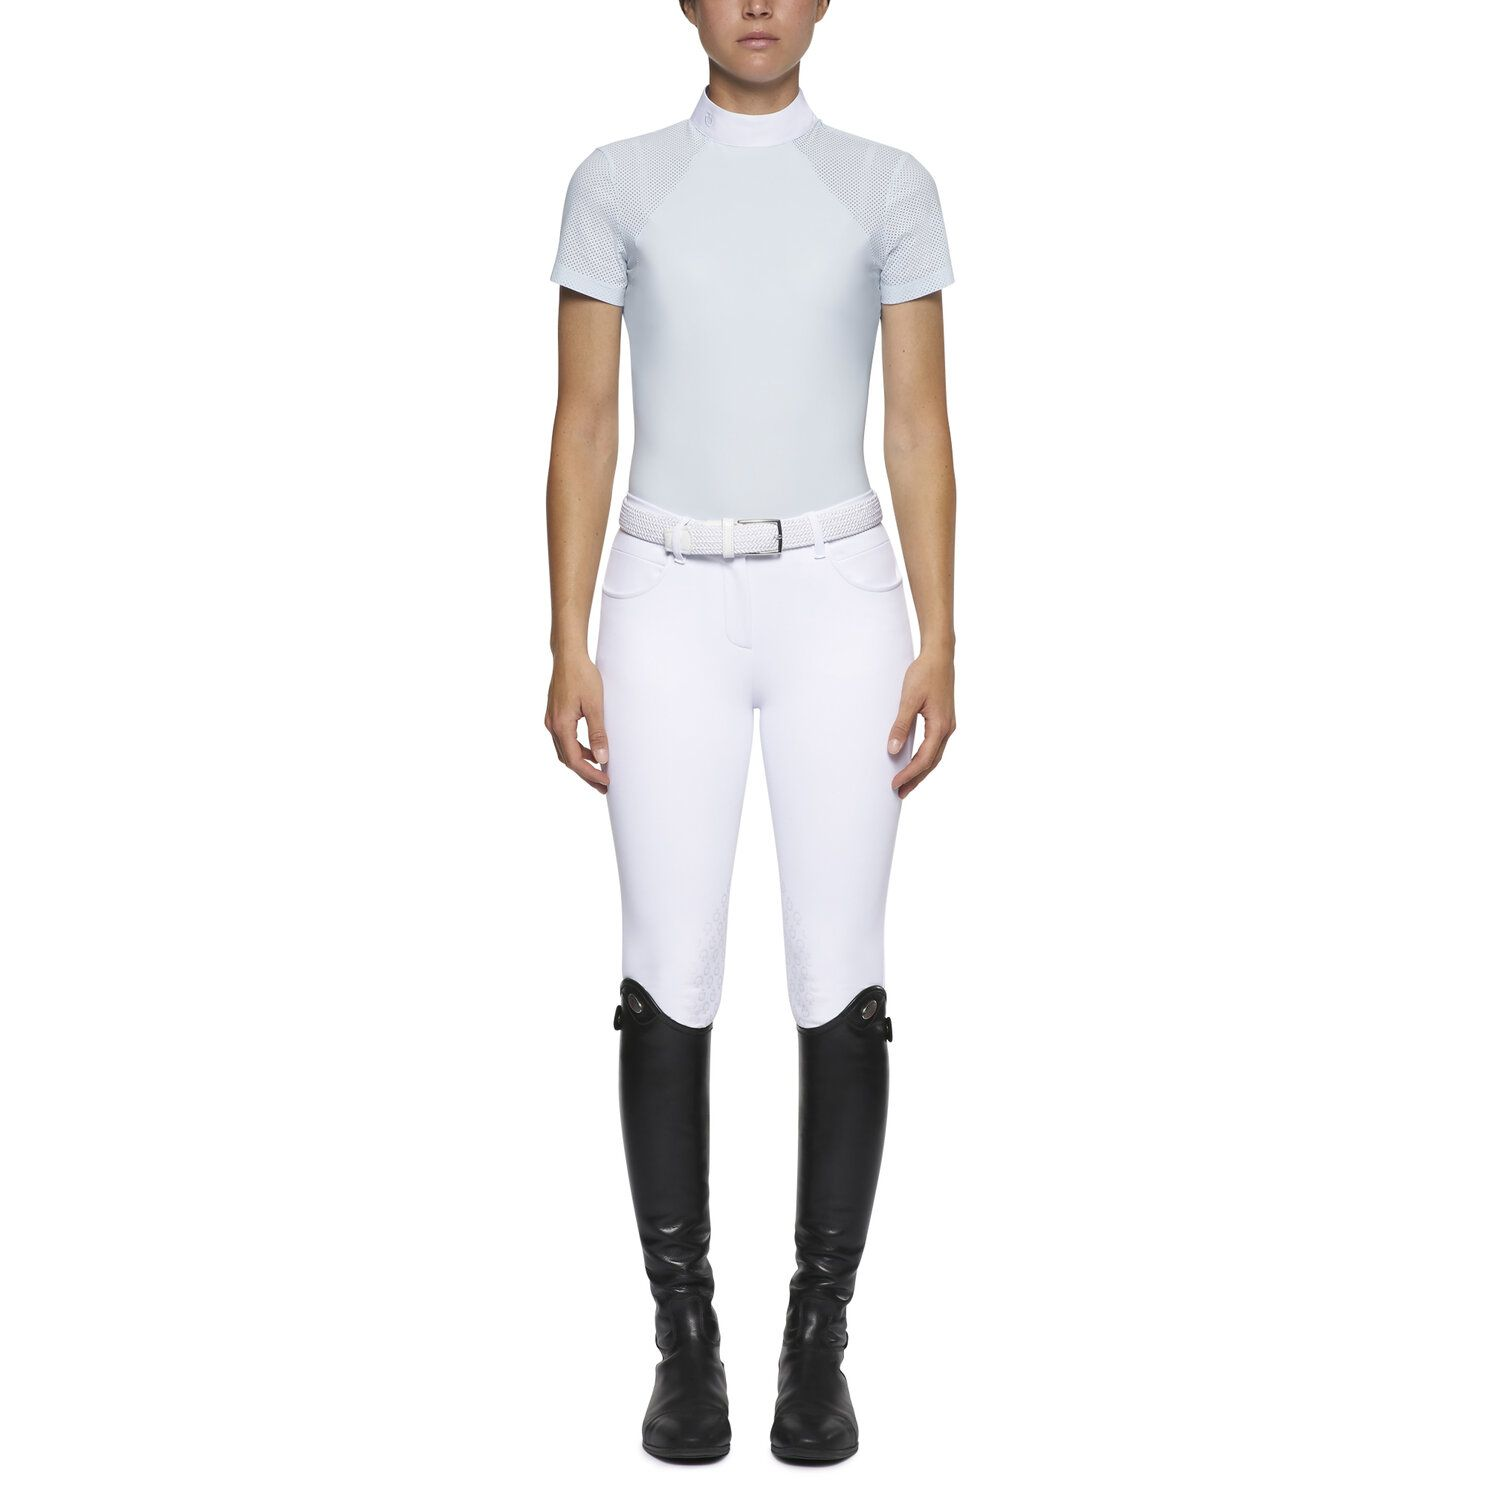 Women's short-sleeved polo with perforated shoulders